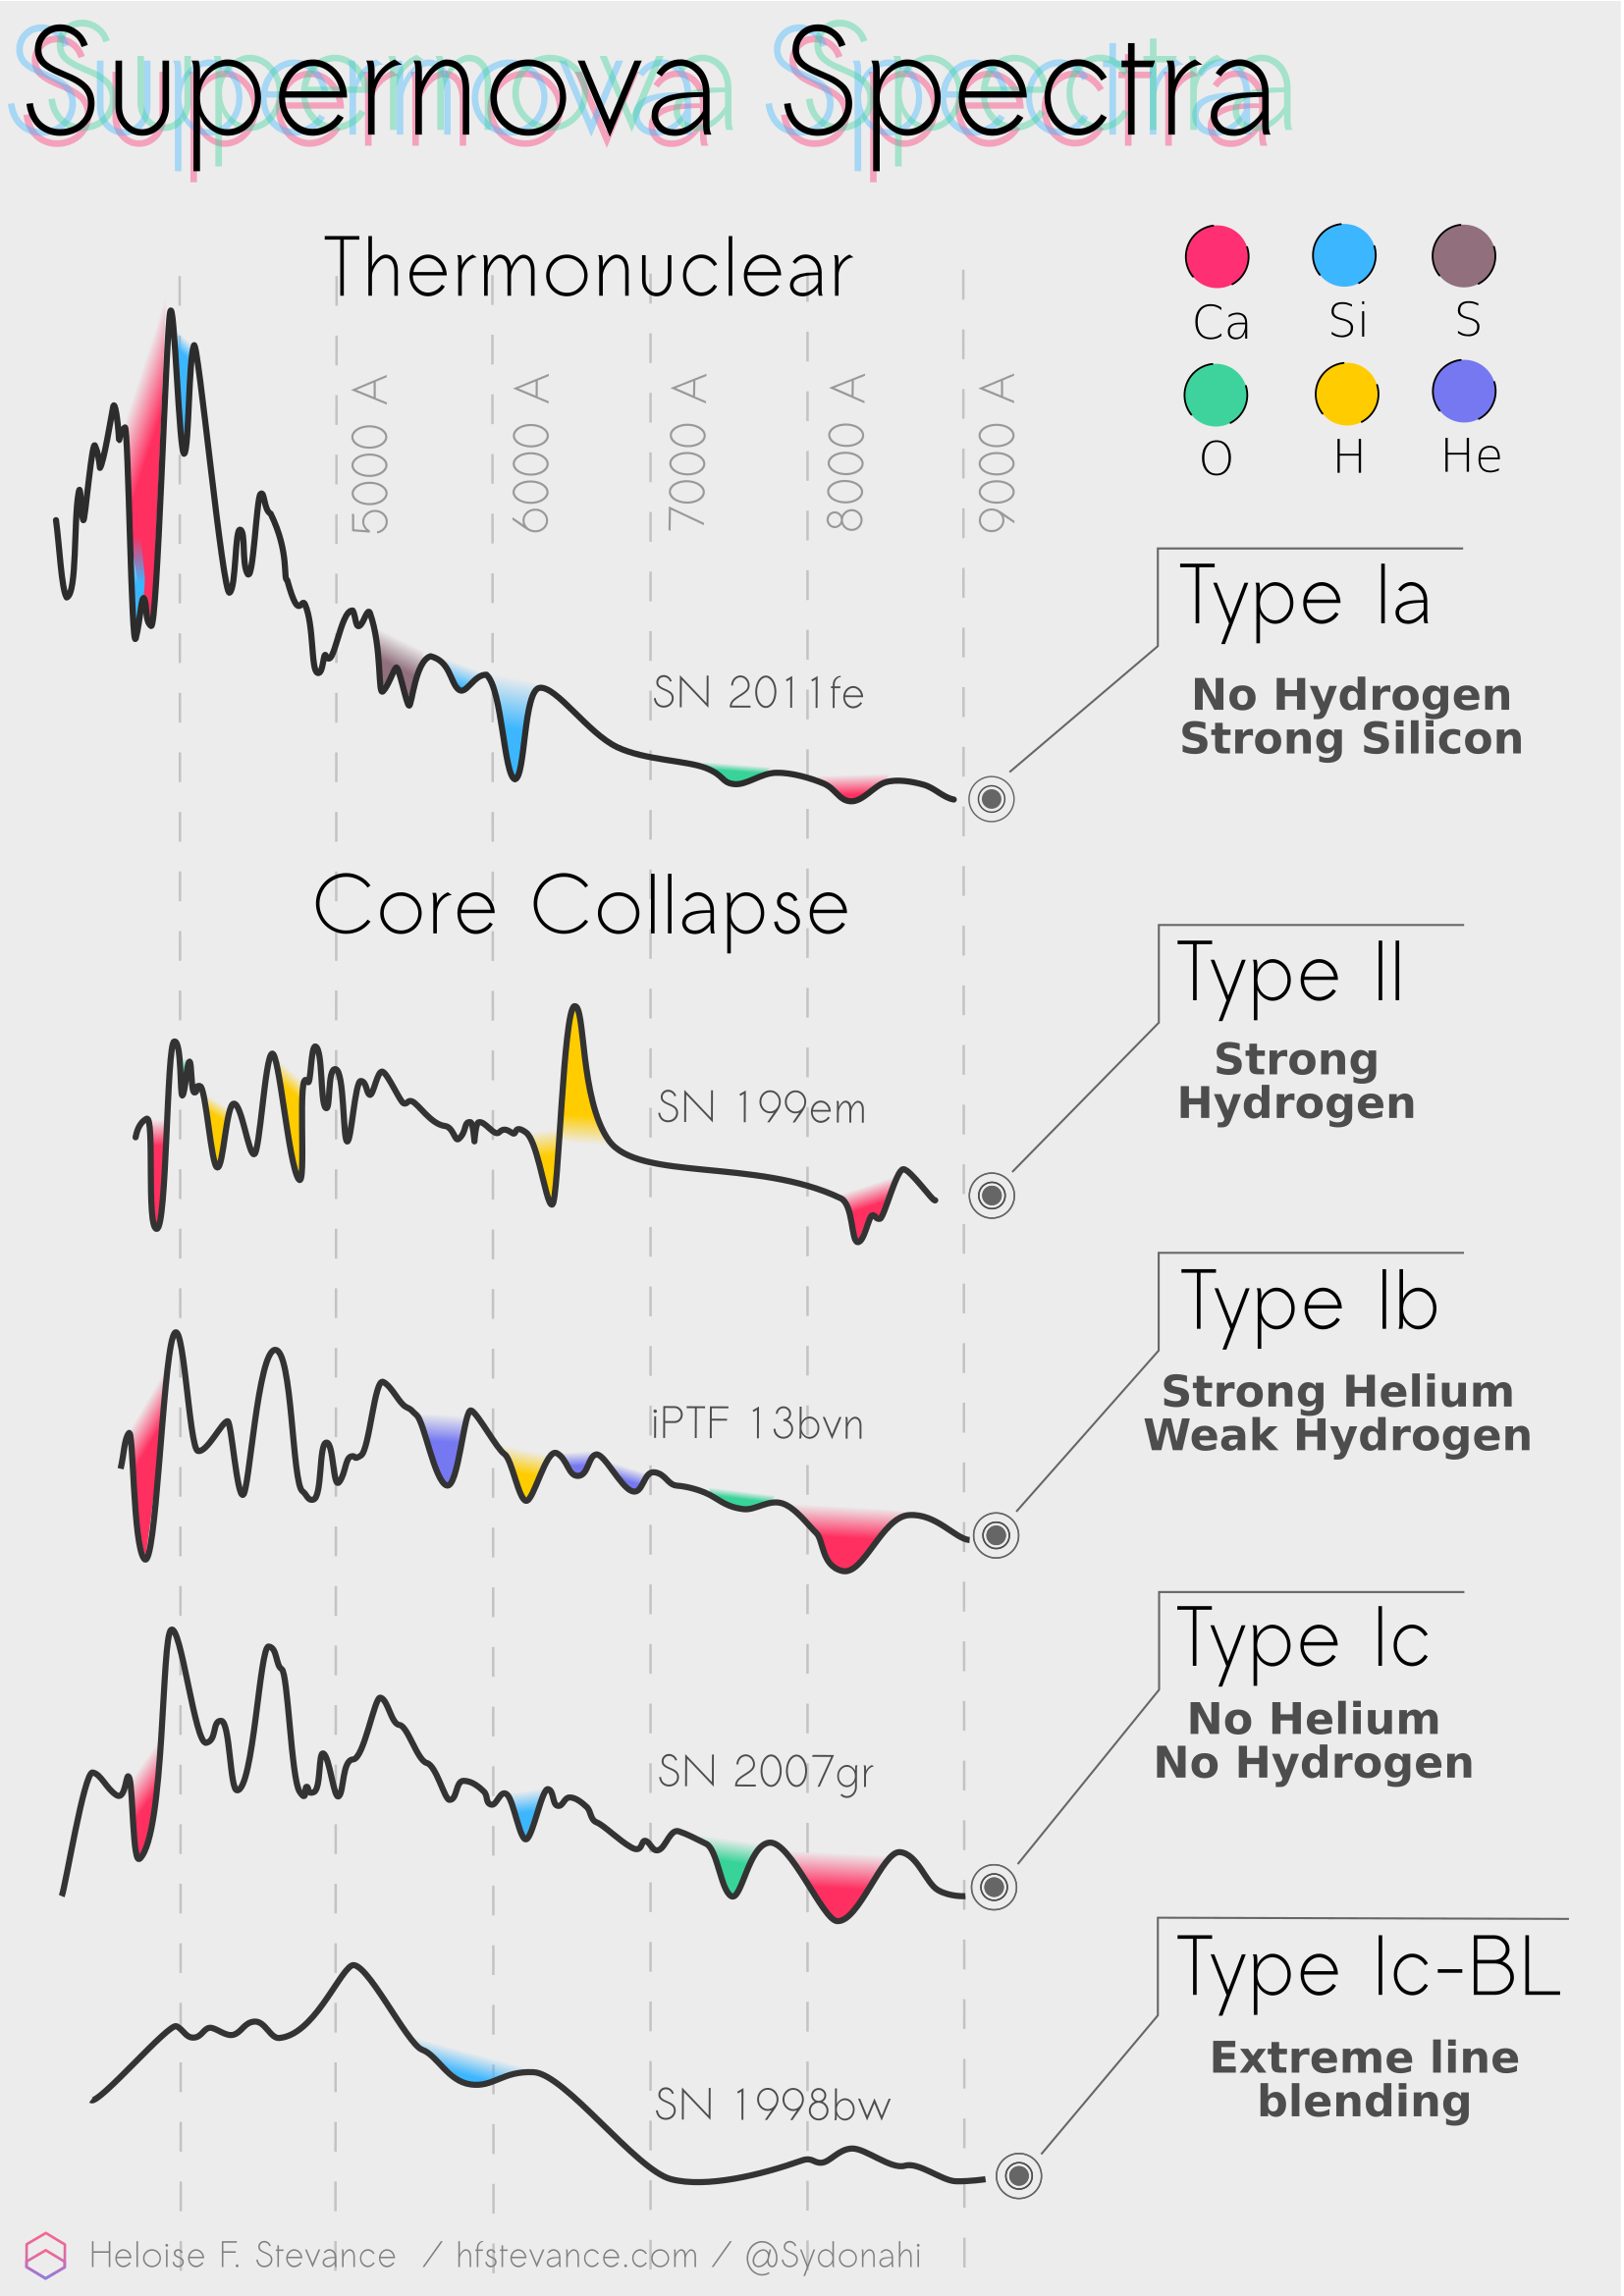 Summary of the main characteristics of Supernova Spectra by type.